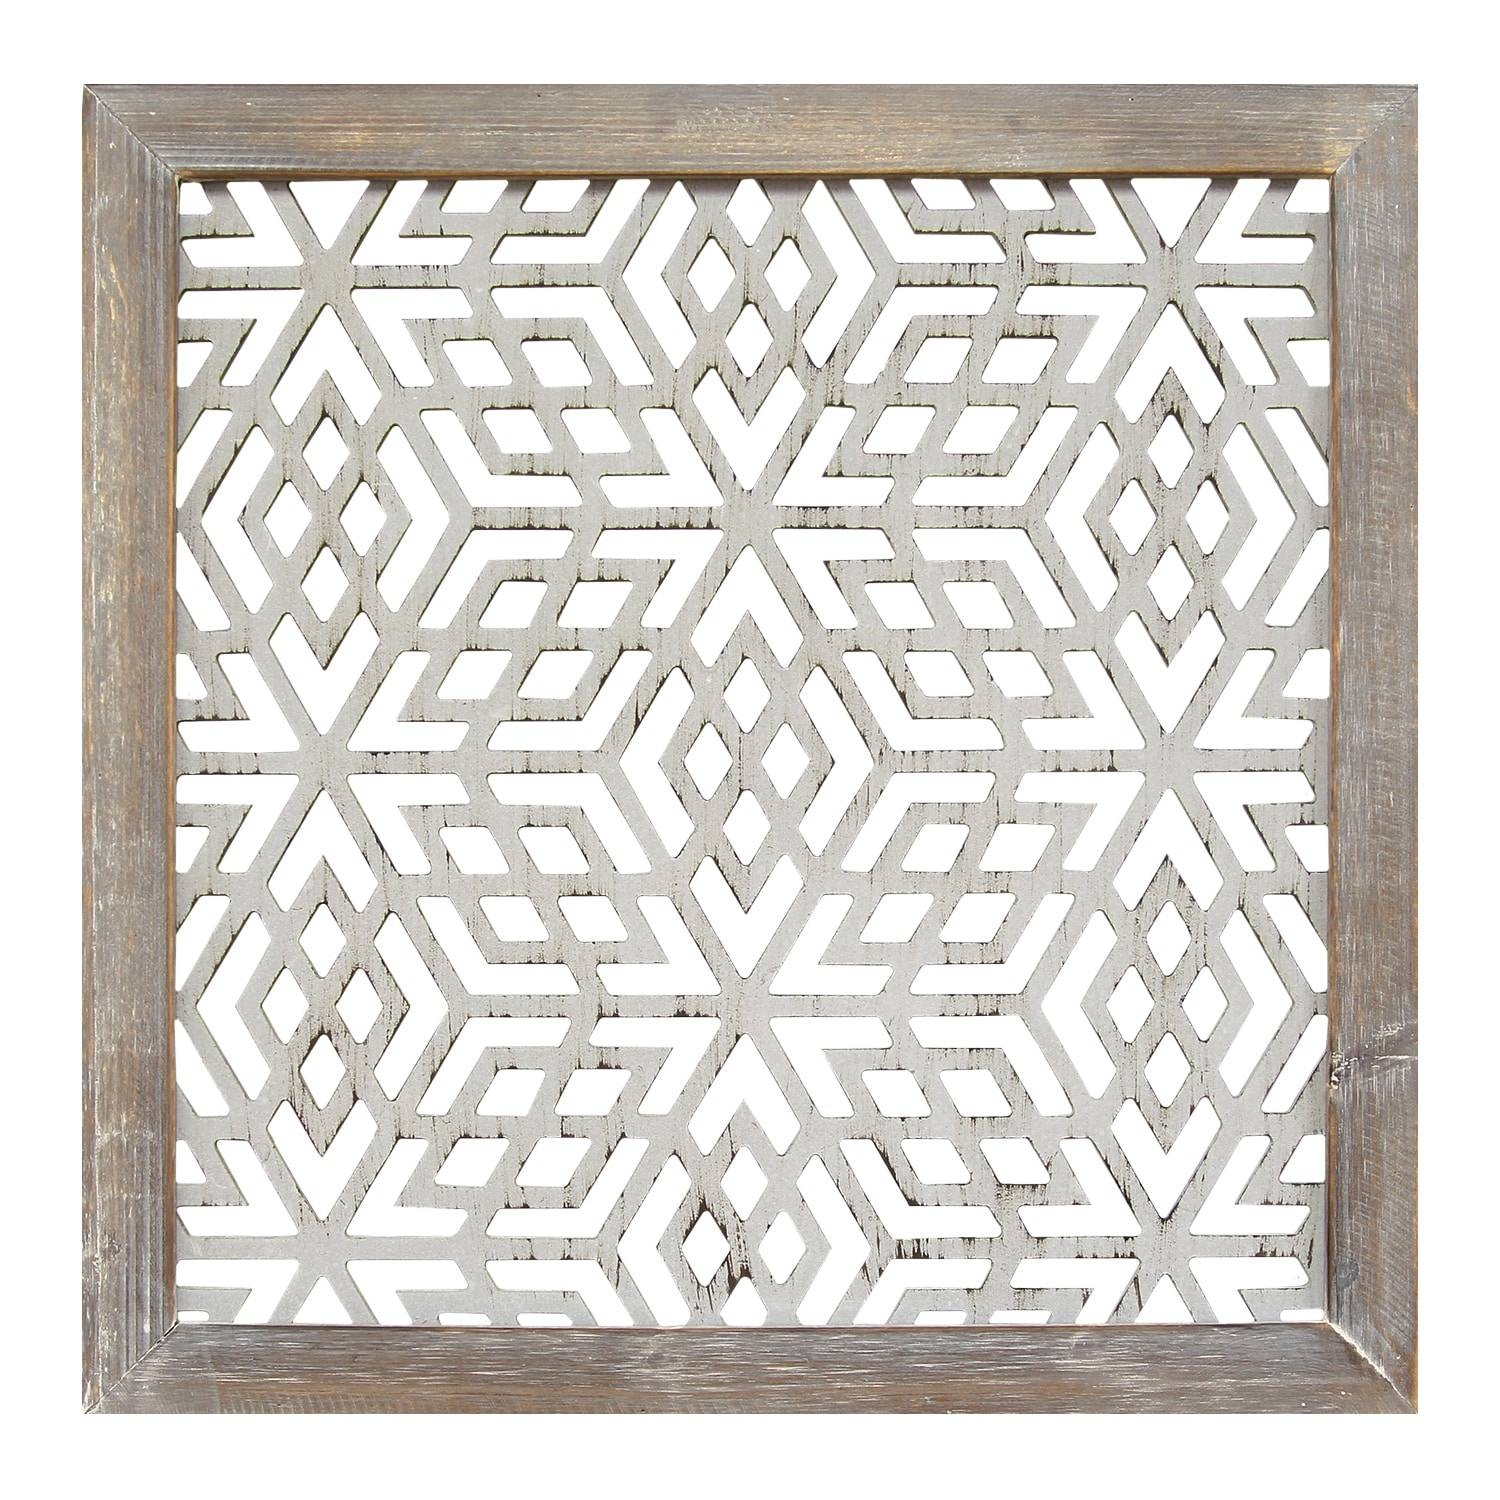 Stratton Home Decor Distressed Grey Wood Framed Laser Cut Metal Intended For Newest Laser Cut Metal Wall Art (View 12 of 20)